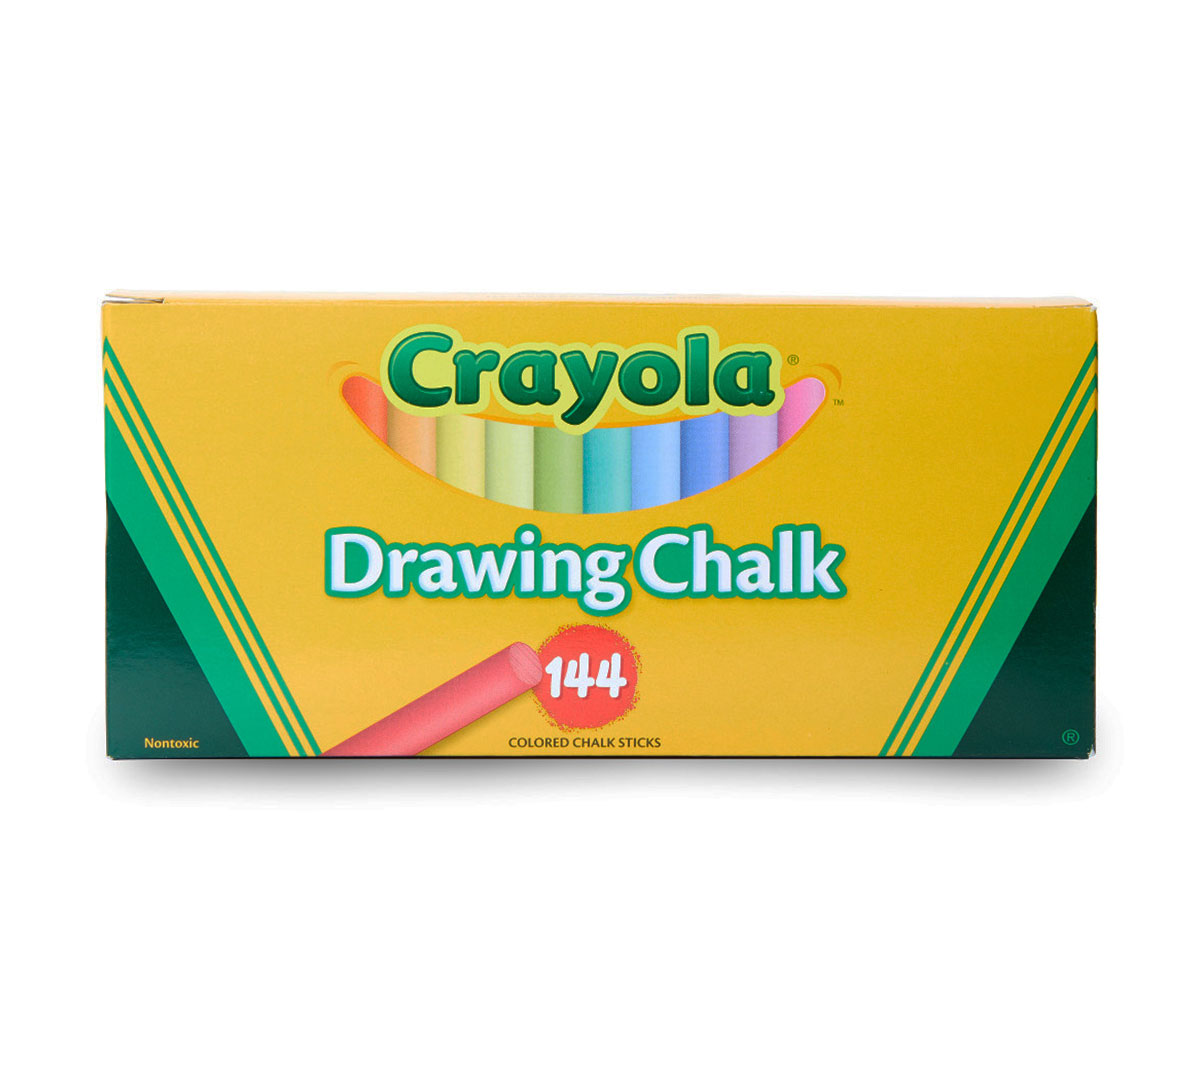 Download Crayola Drawing Chalk, Bulk Art Supplies, 144 Count | Crayola.com | Crayola